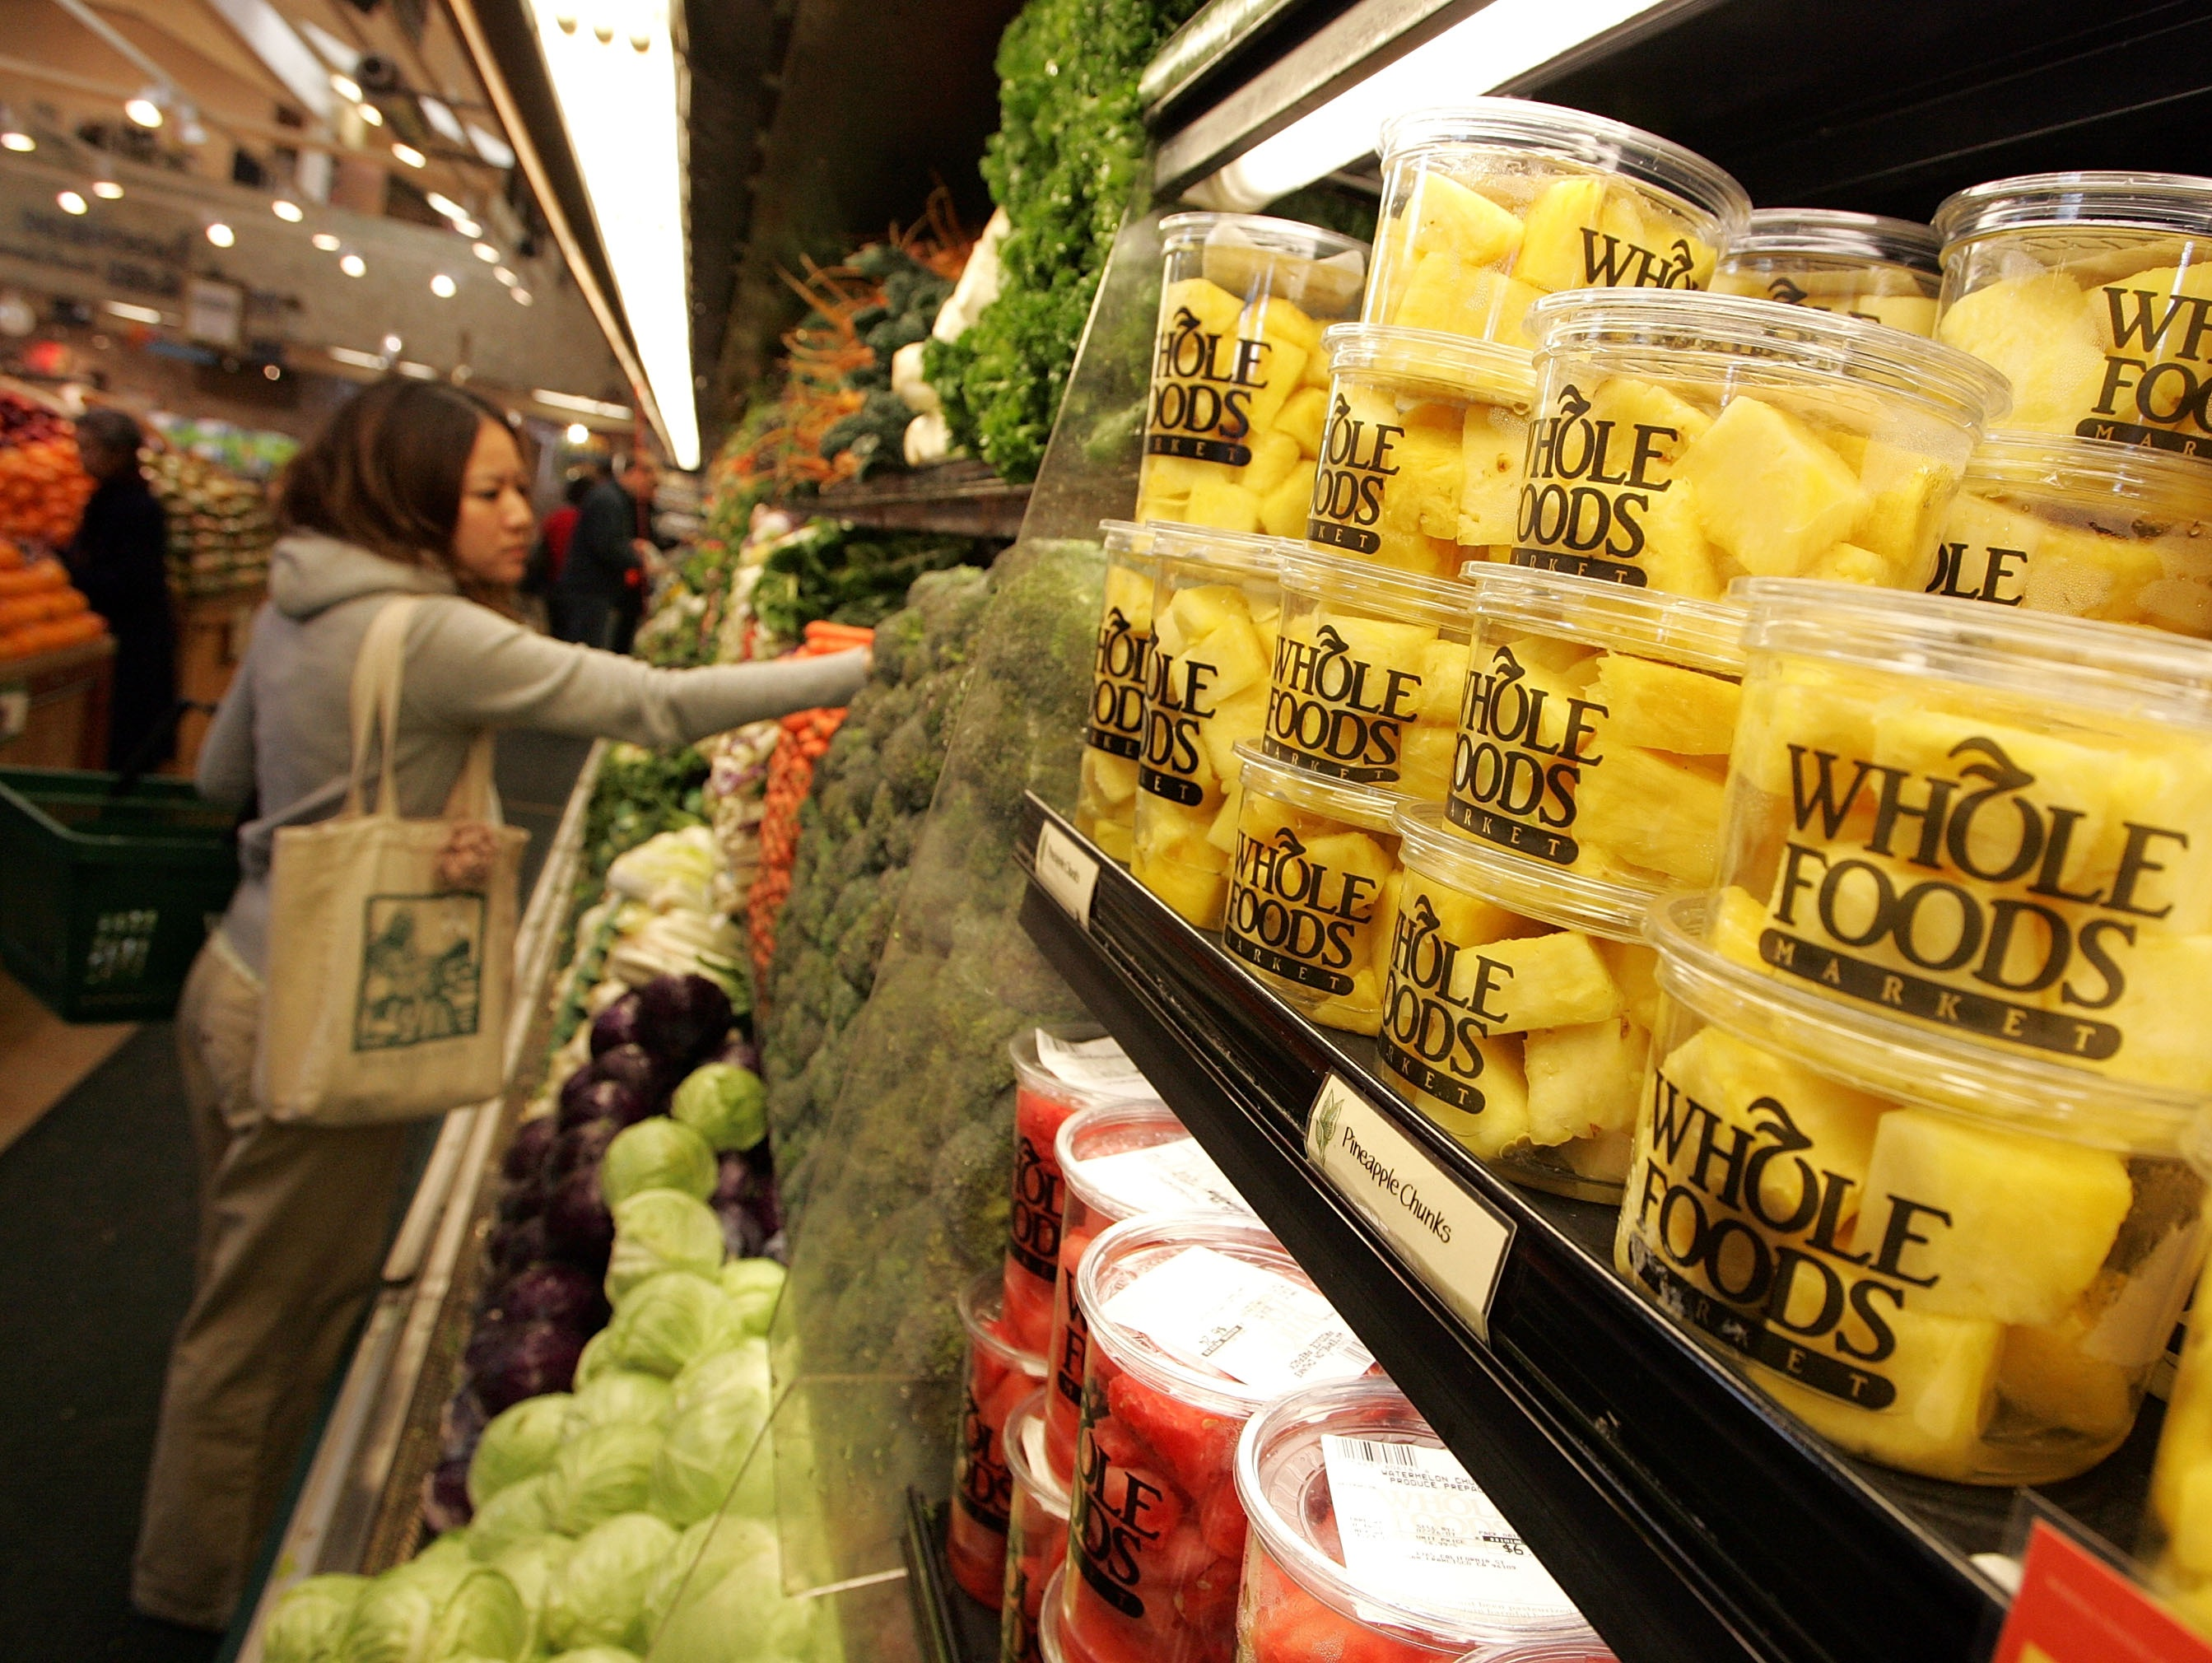 whole foods a whole istic strategy Case study: whole foods a whole-istic strategy i company backgrounds whole foods market was founded in austin, texas, when four local business people decided the natural foods industry was ready for a supermarket format.